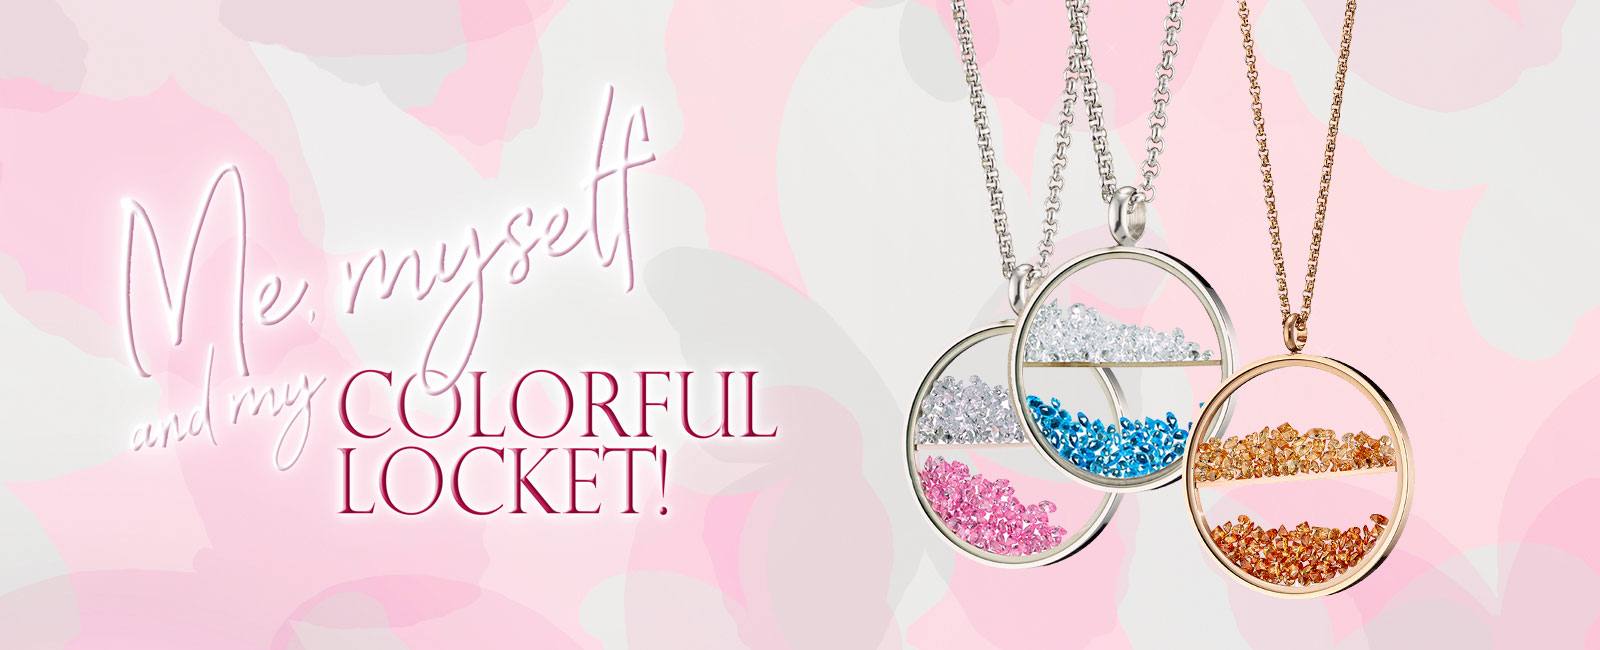 Colorful Locket Collection - Loisir